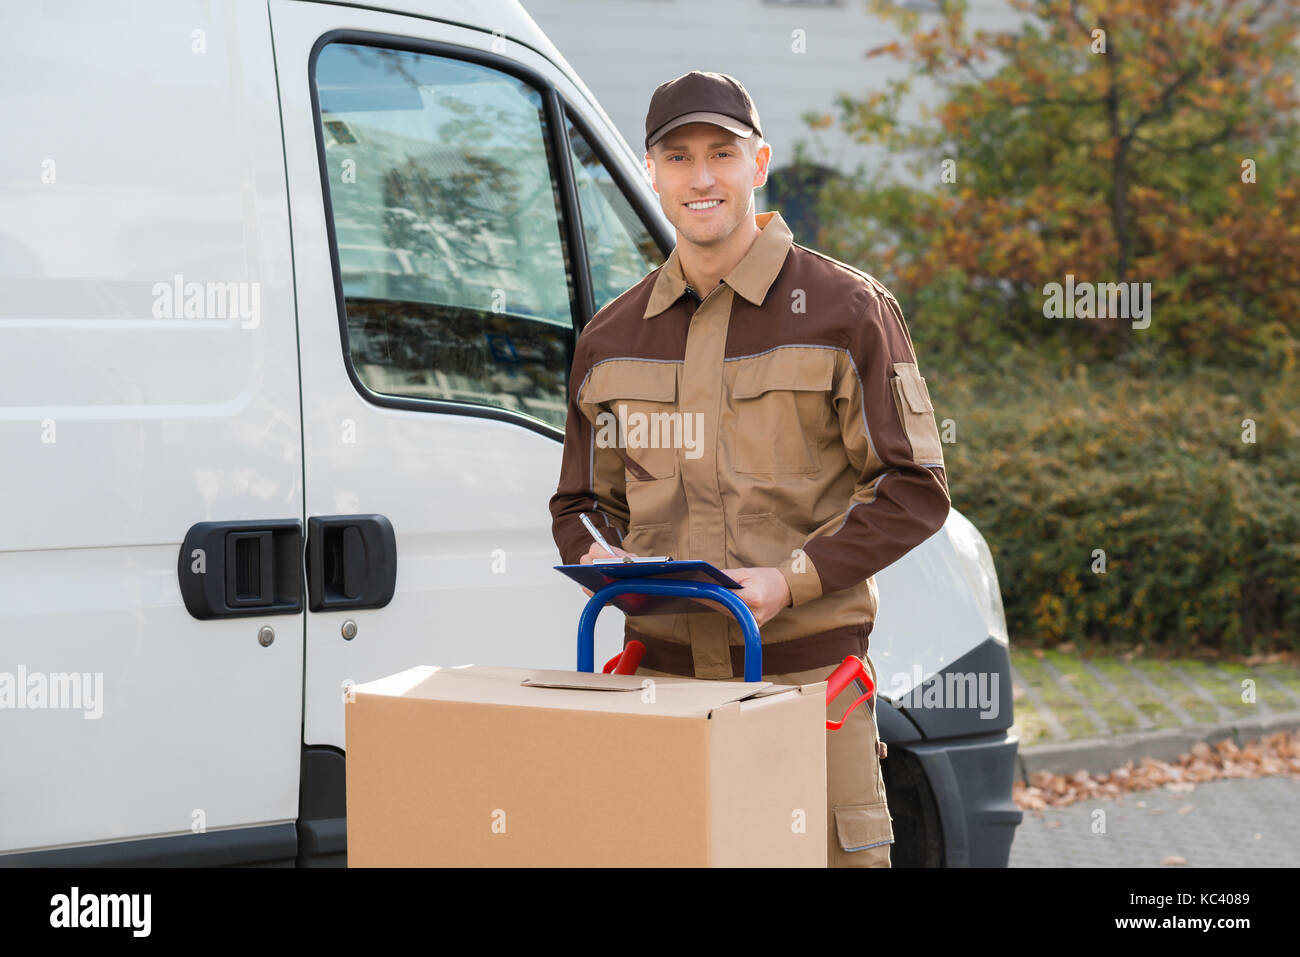 Portrait of confident delivery man with parcels and clipboard standing on street - Stock Image